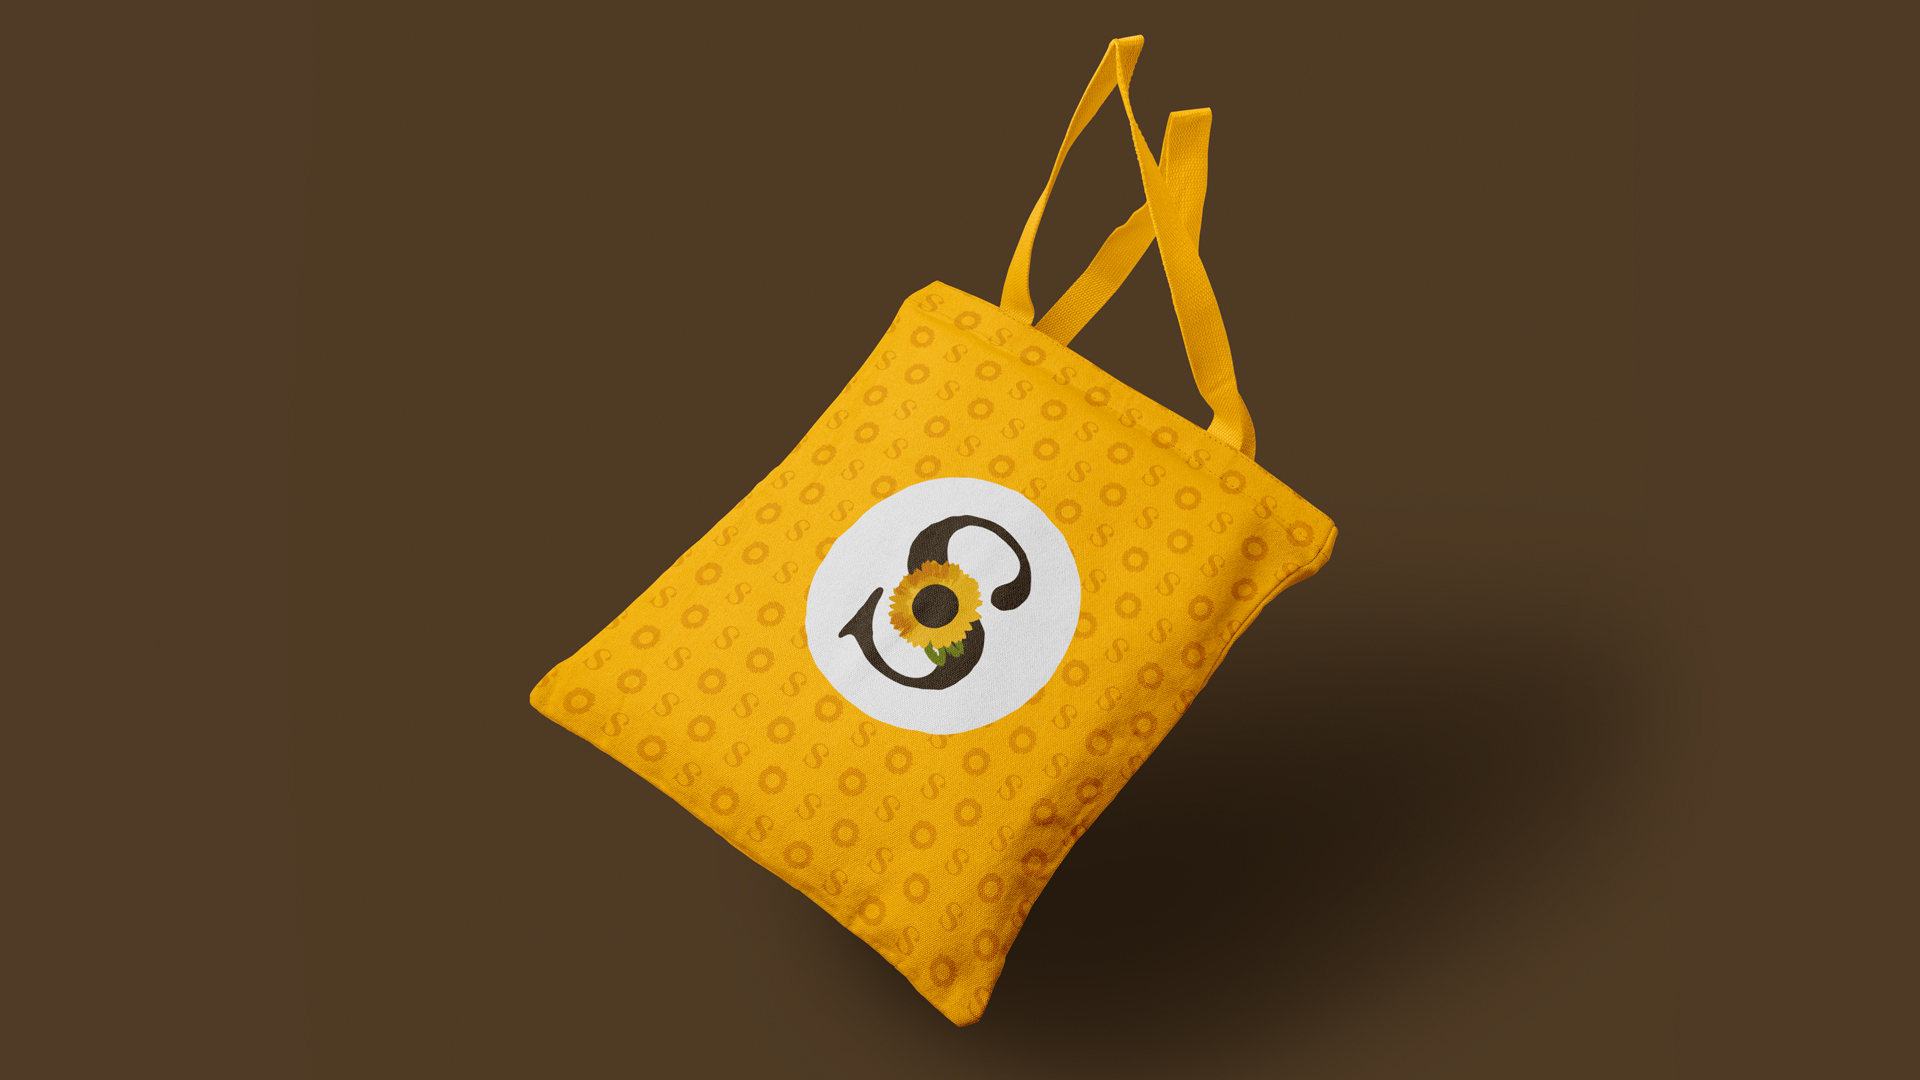 Wellness Brand Design elements in a bag with logo and pattern for SUNFLOWER